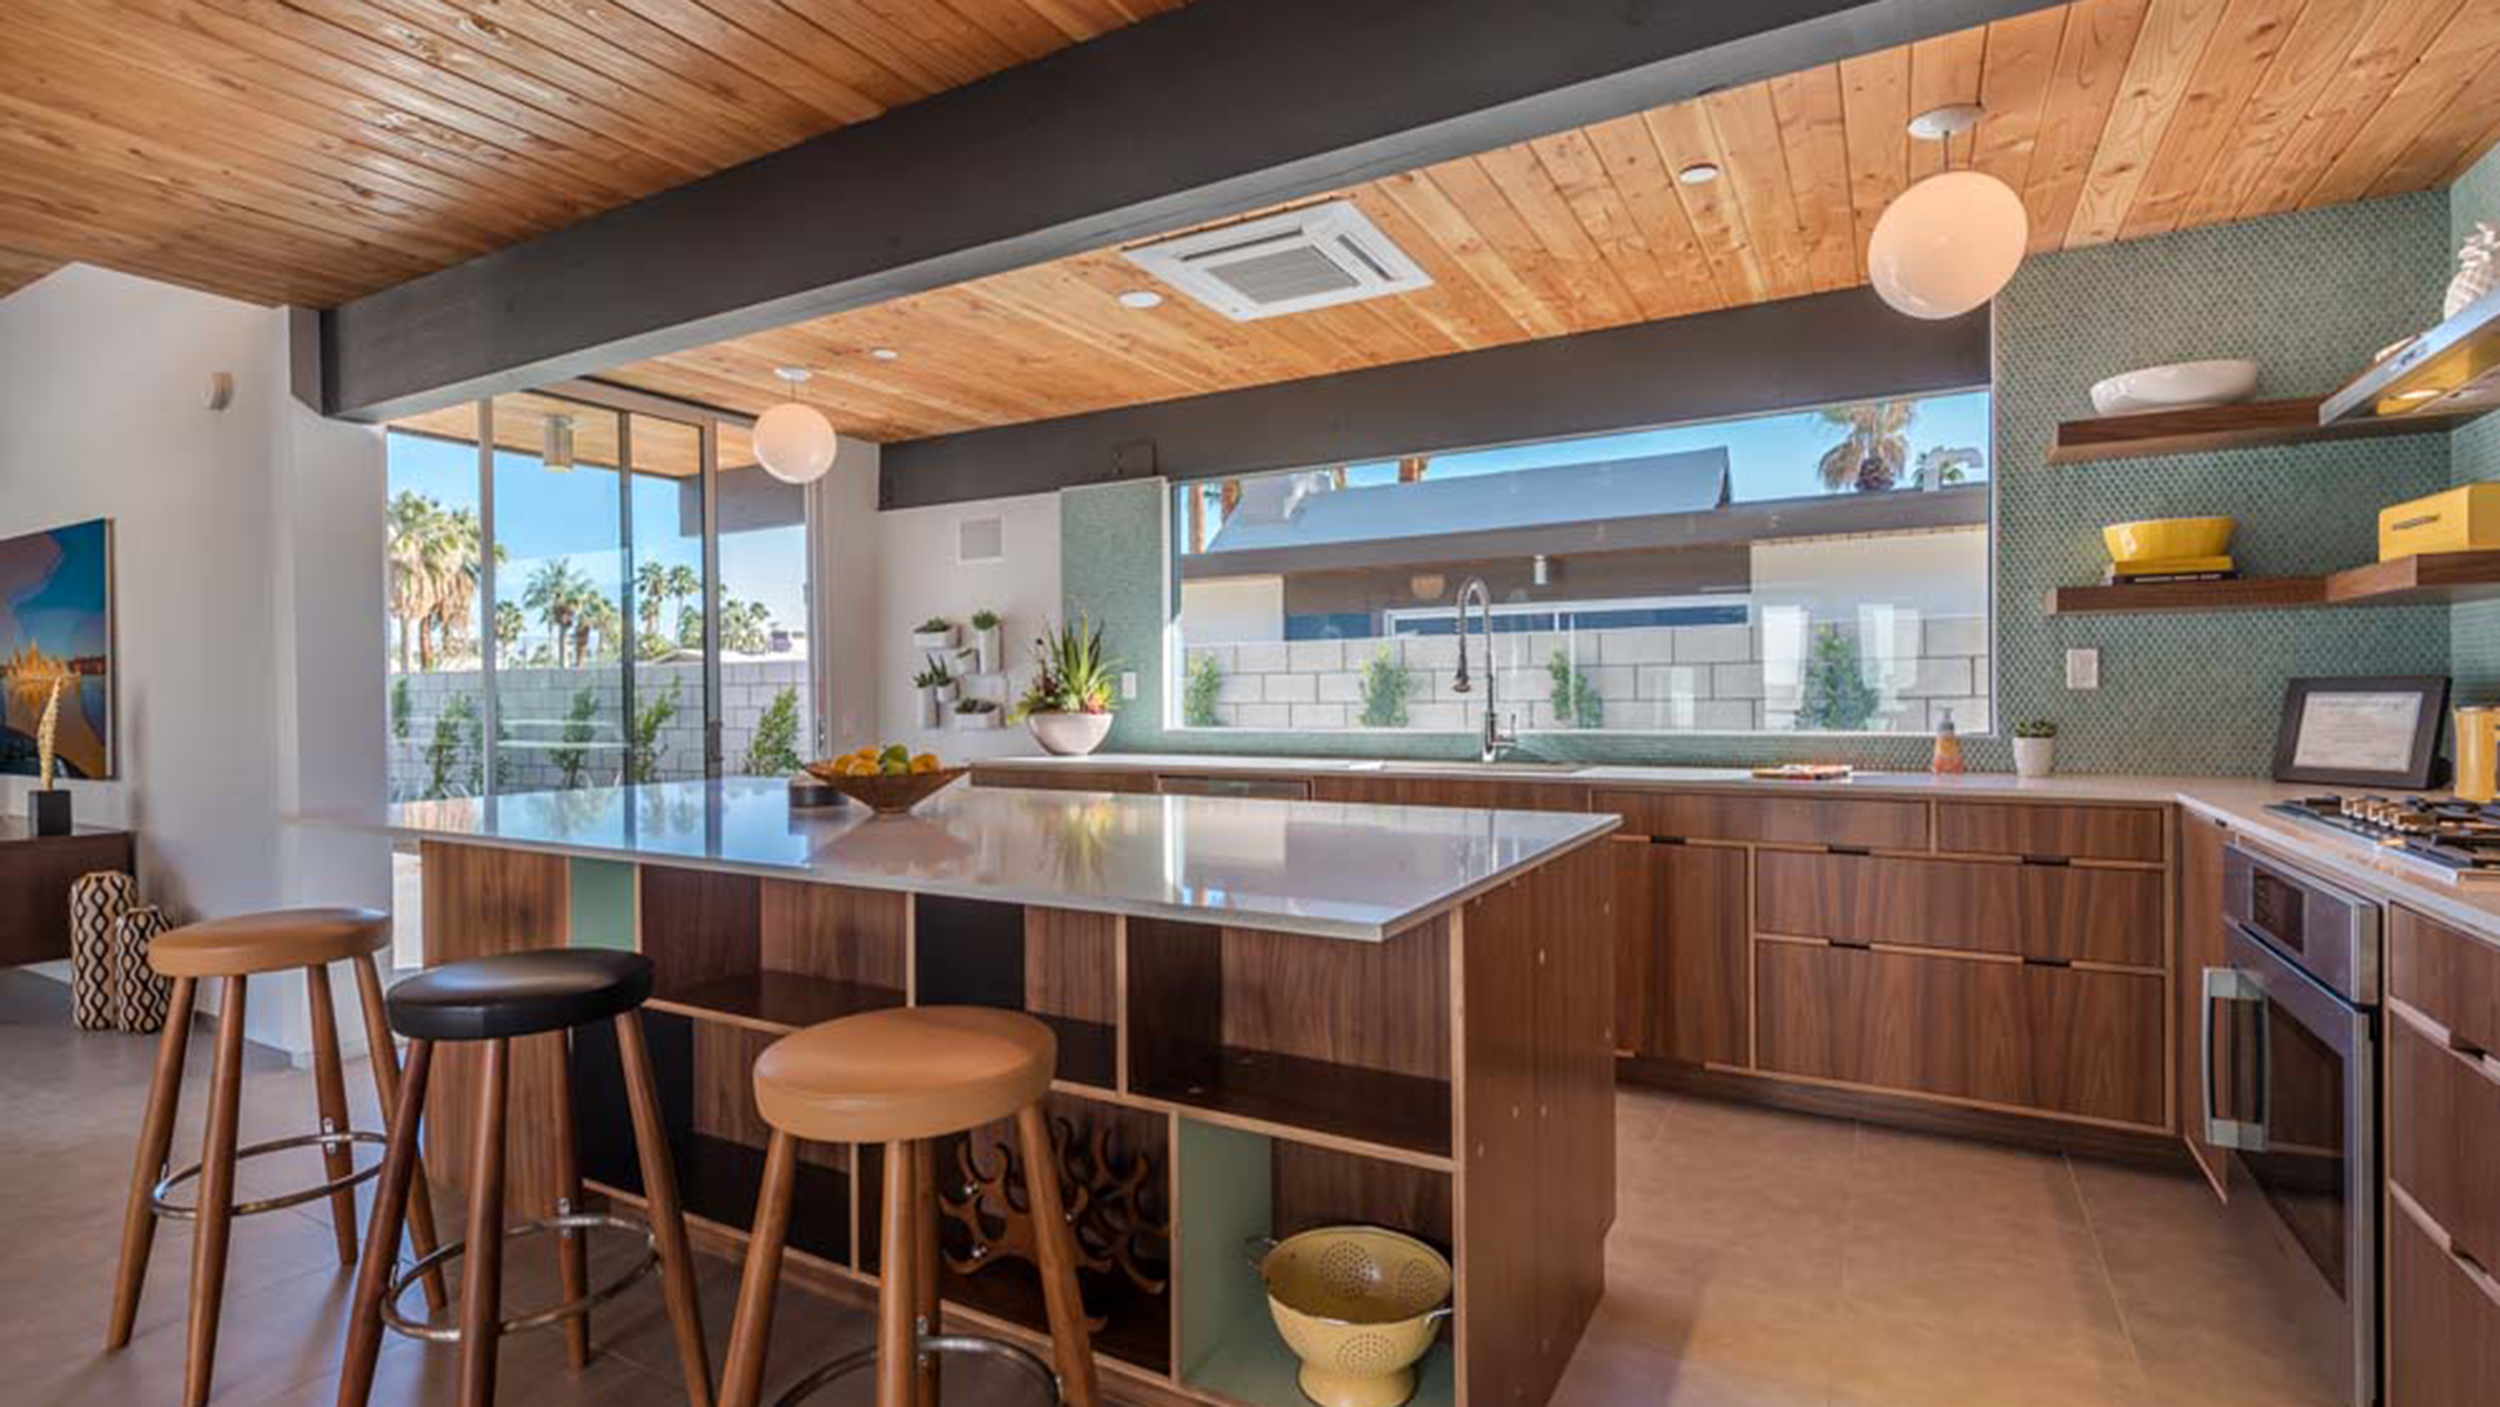 retro wonder see inside this luxe mid century home today com